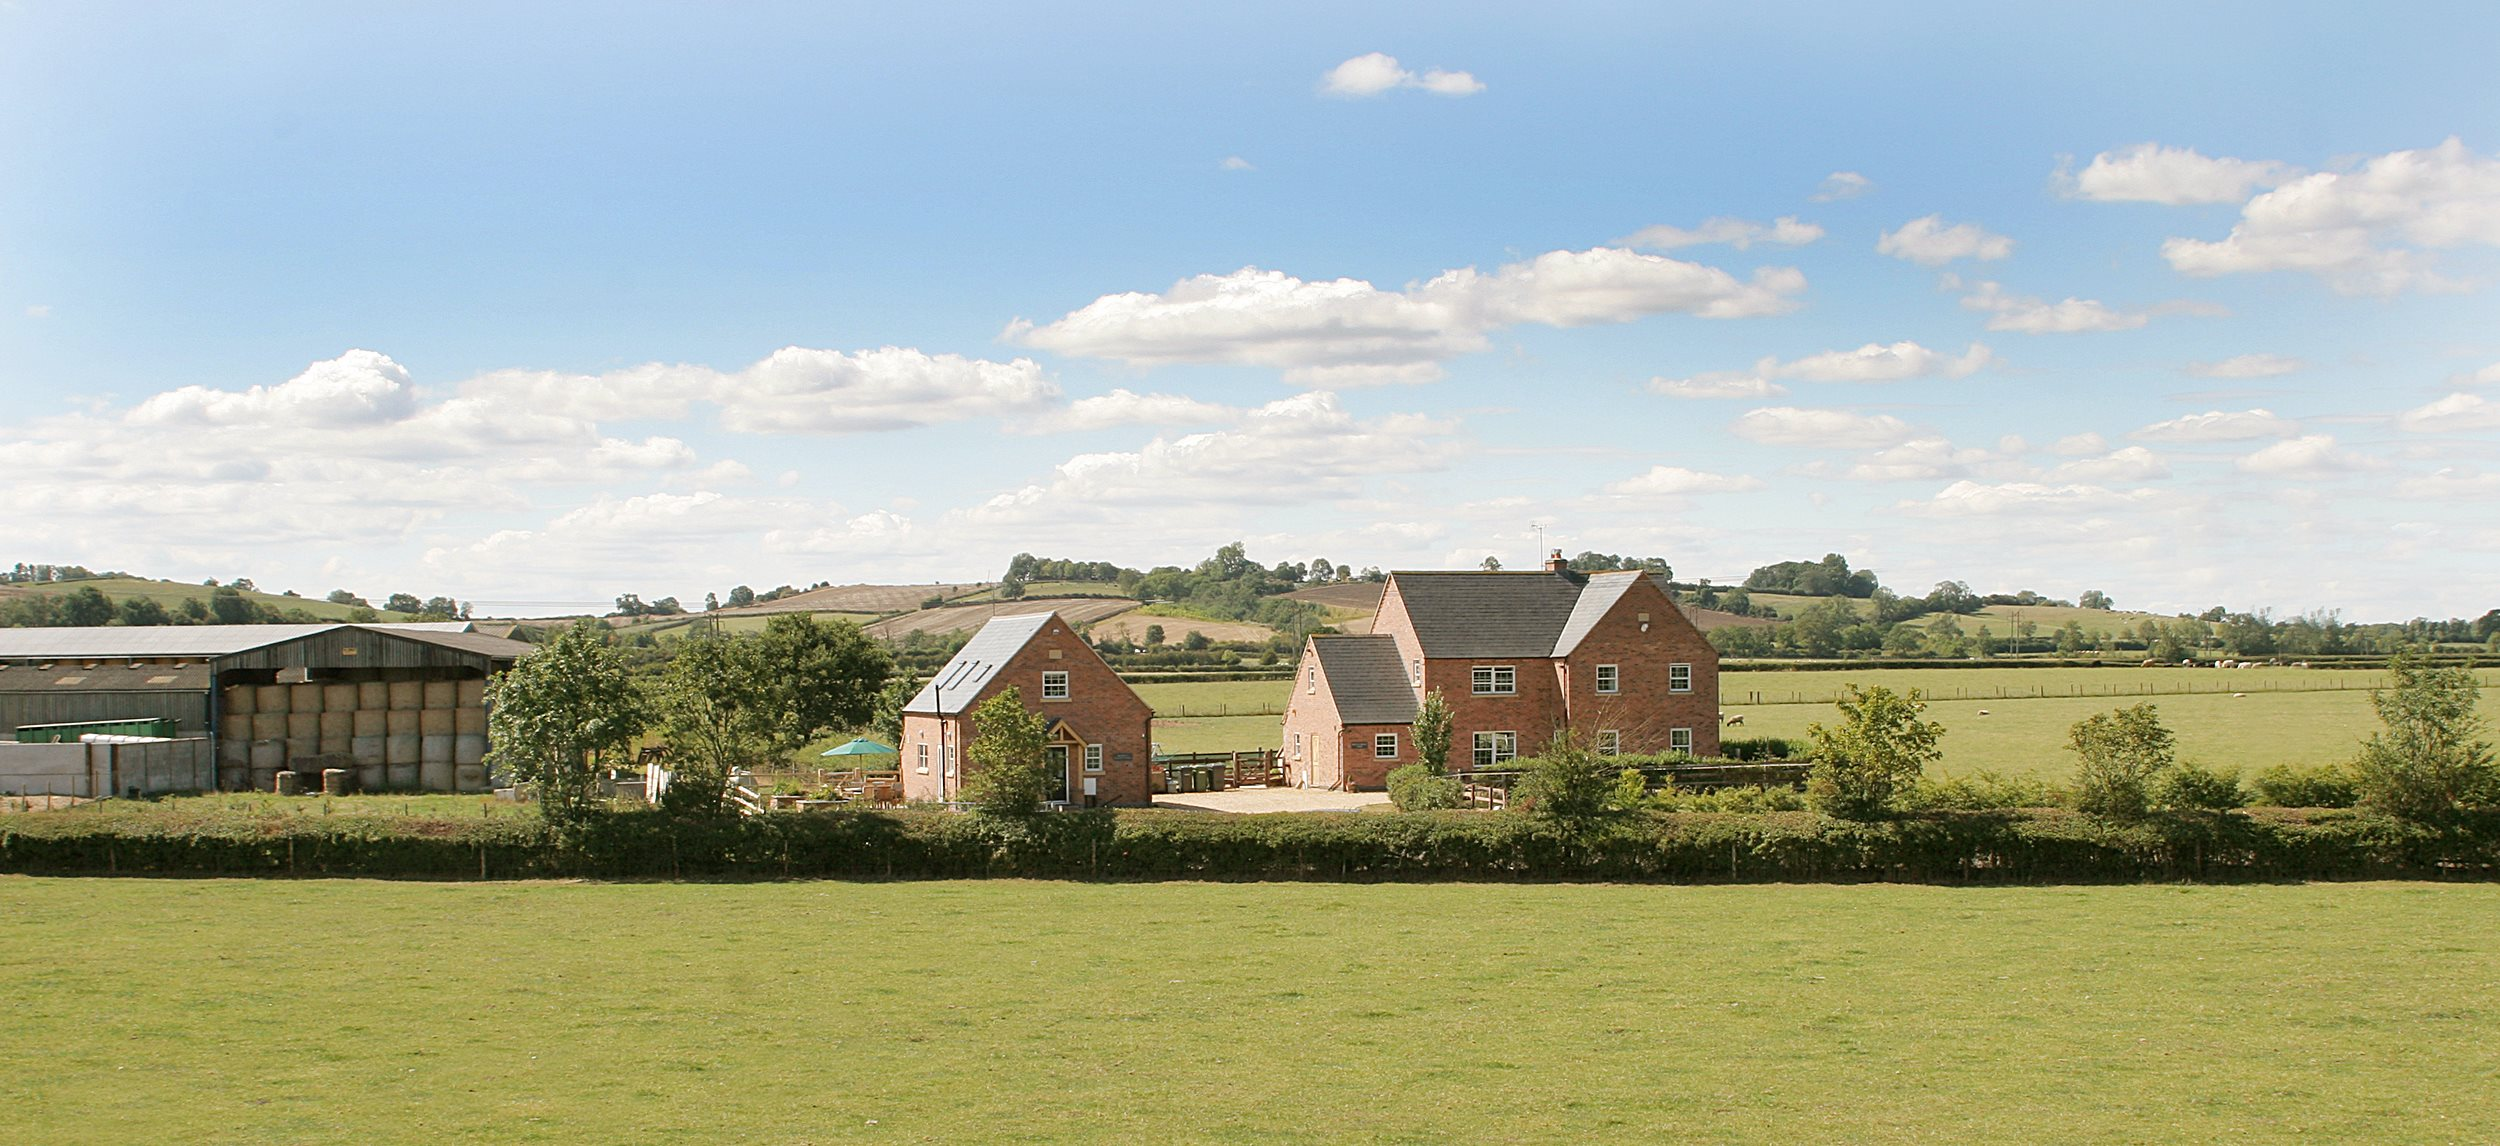 Binley Bridge Farm